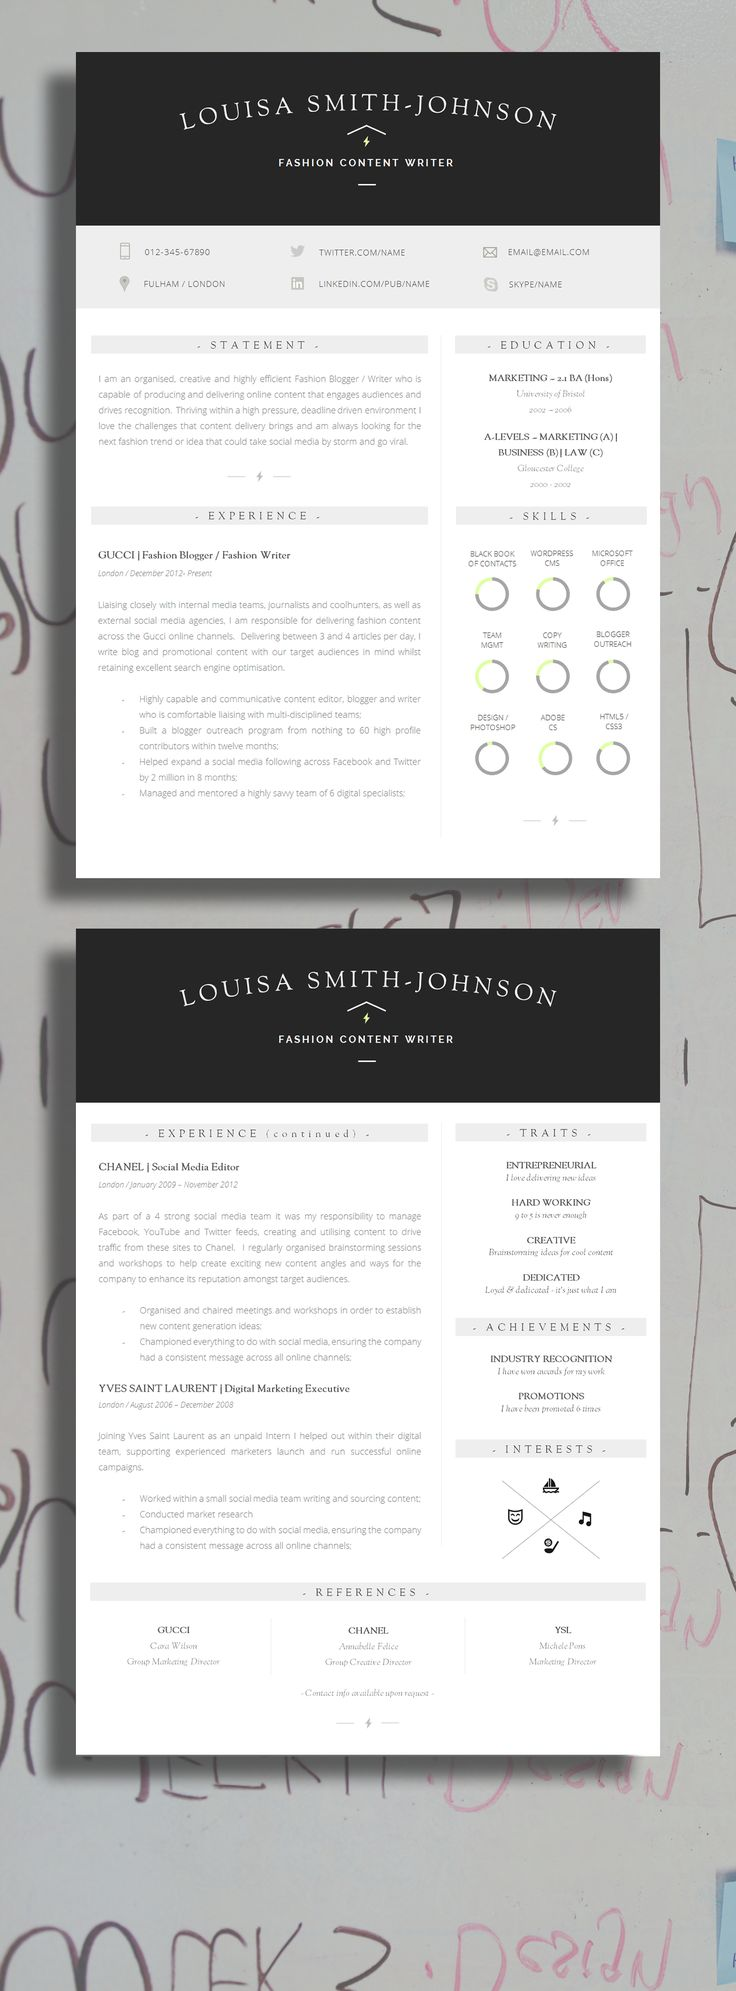 Chronological Resume Samples%0A Resume Design   Resume Template   Cover Letter   Resume Guide   Icons u